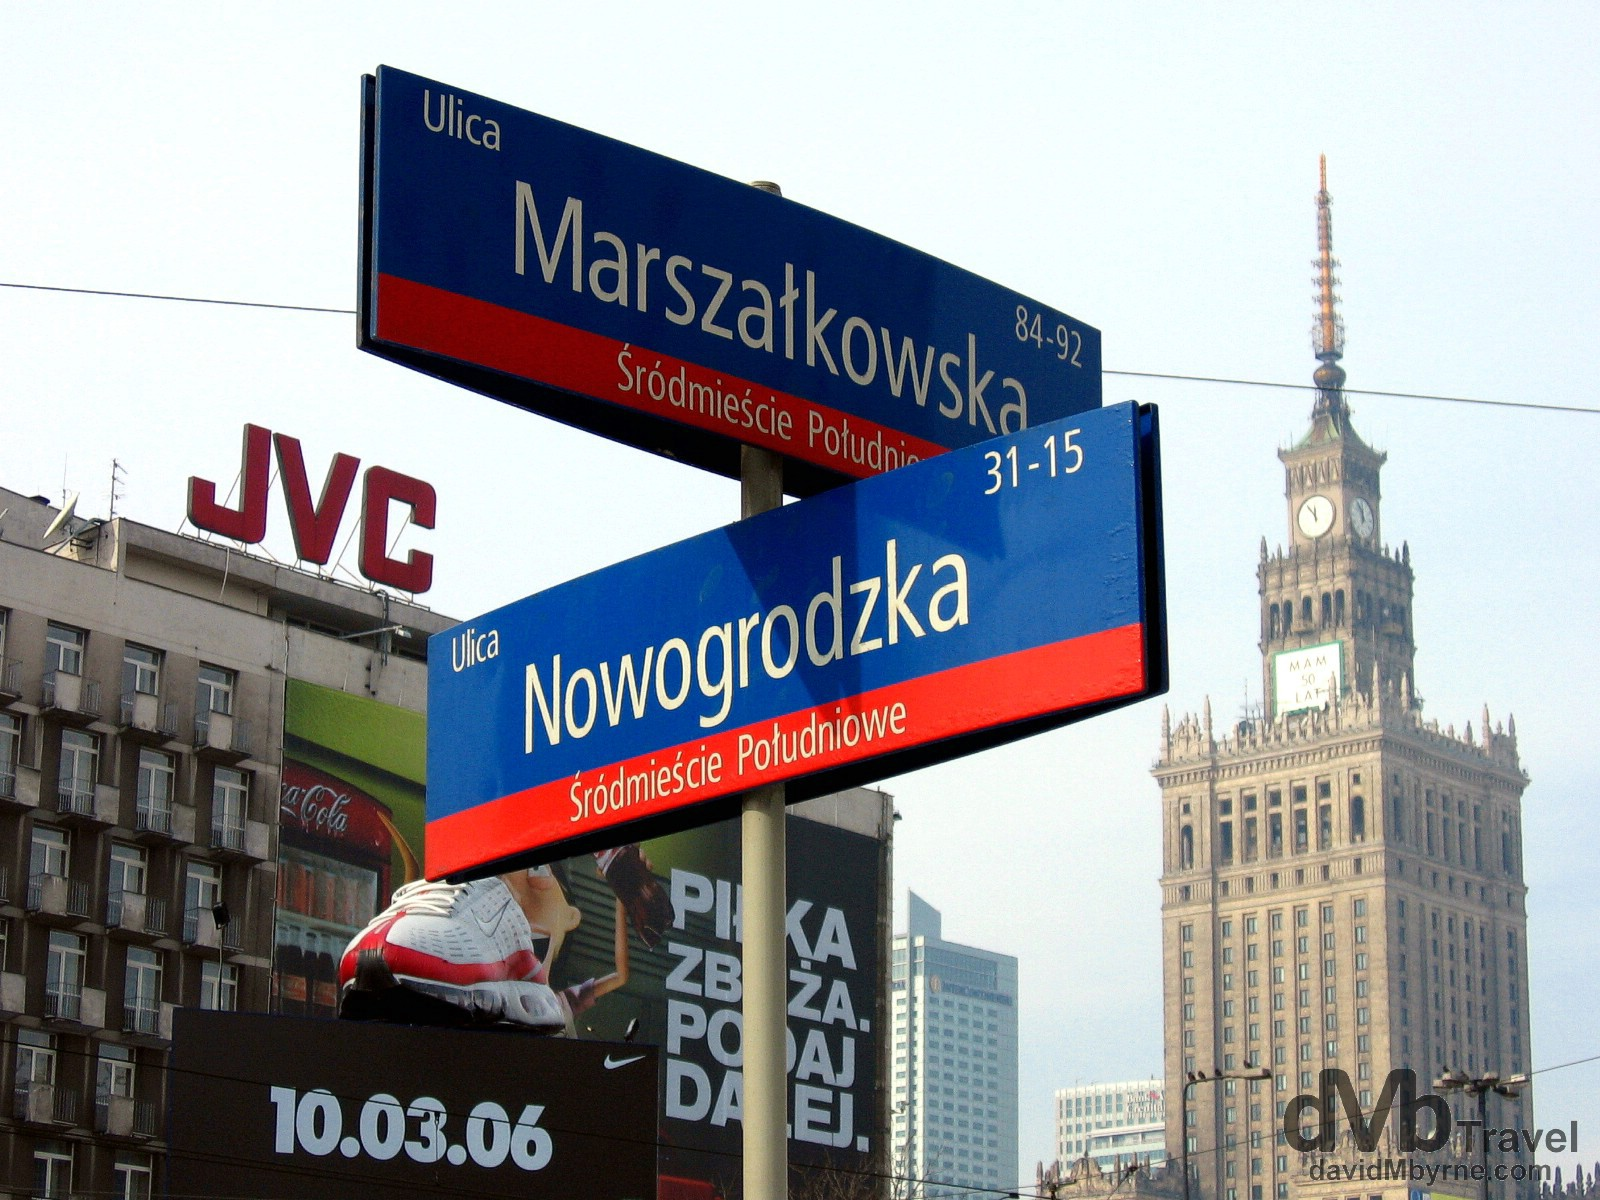 Street signage & the massive tower of the Palace of Culture & Science building as seen from outside Centrum Metro Station in Warsaw, Poland. March 5, 2006.